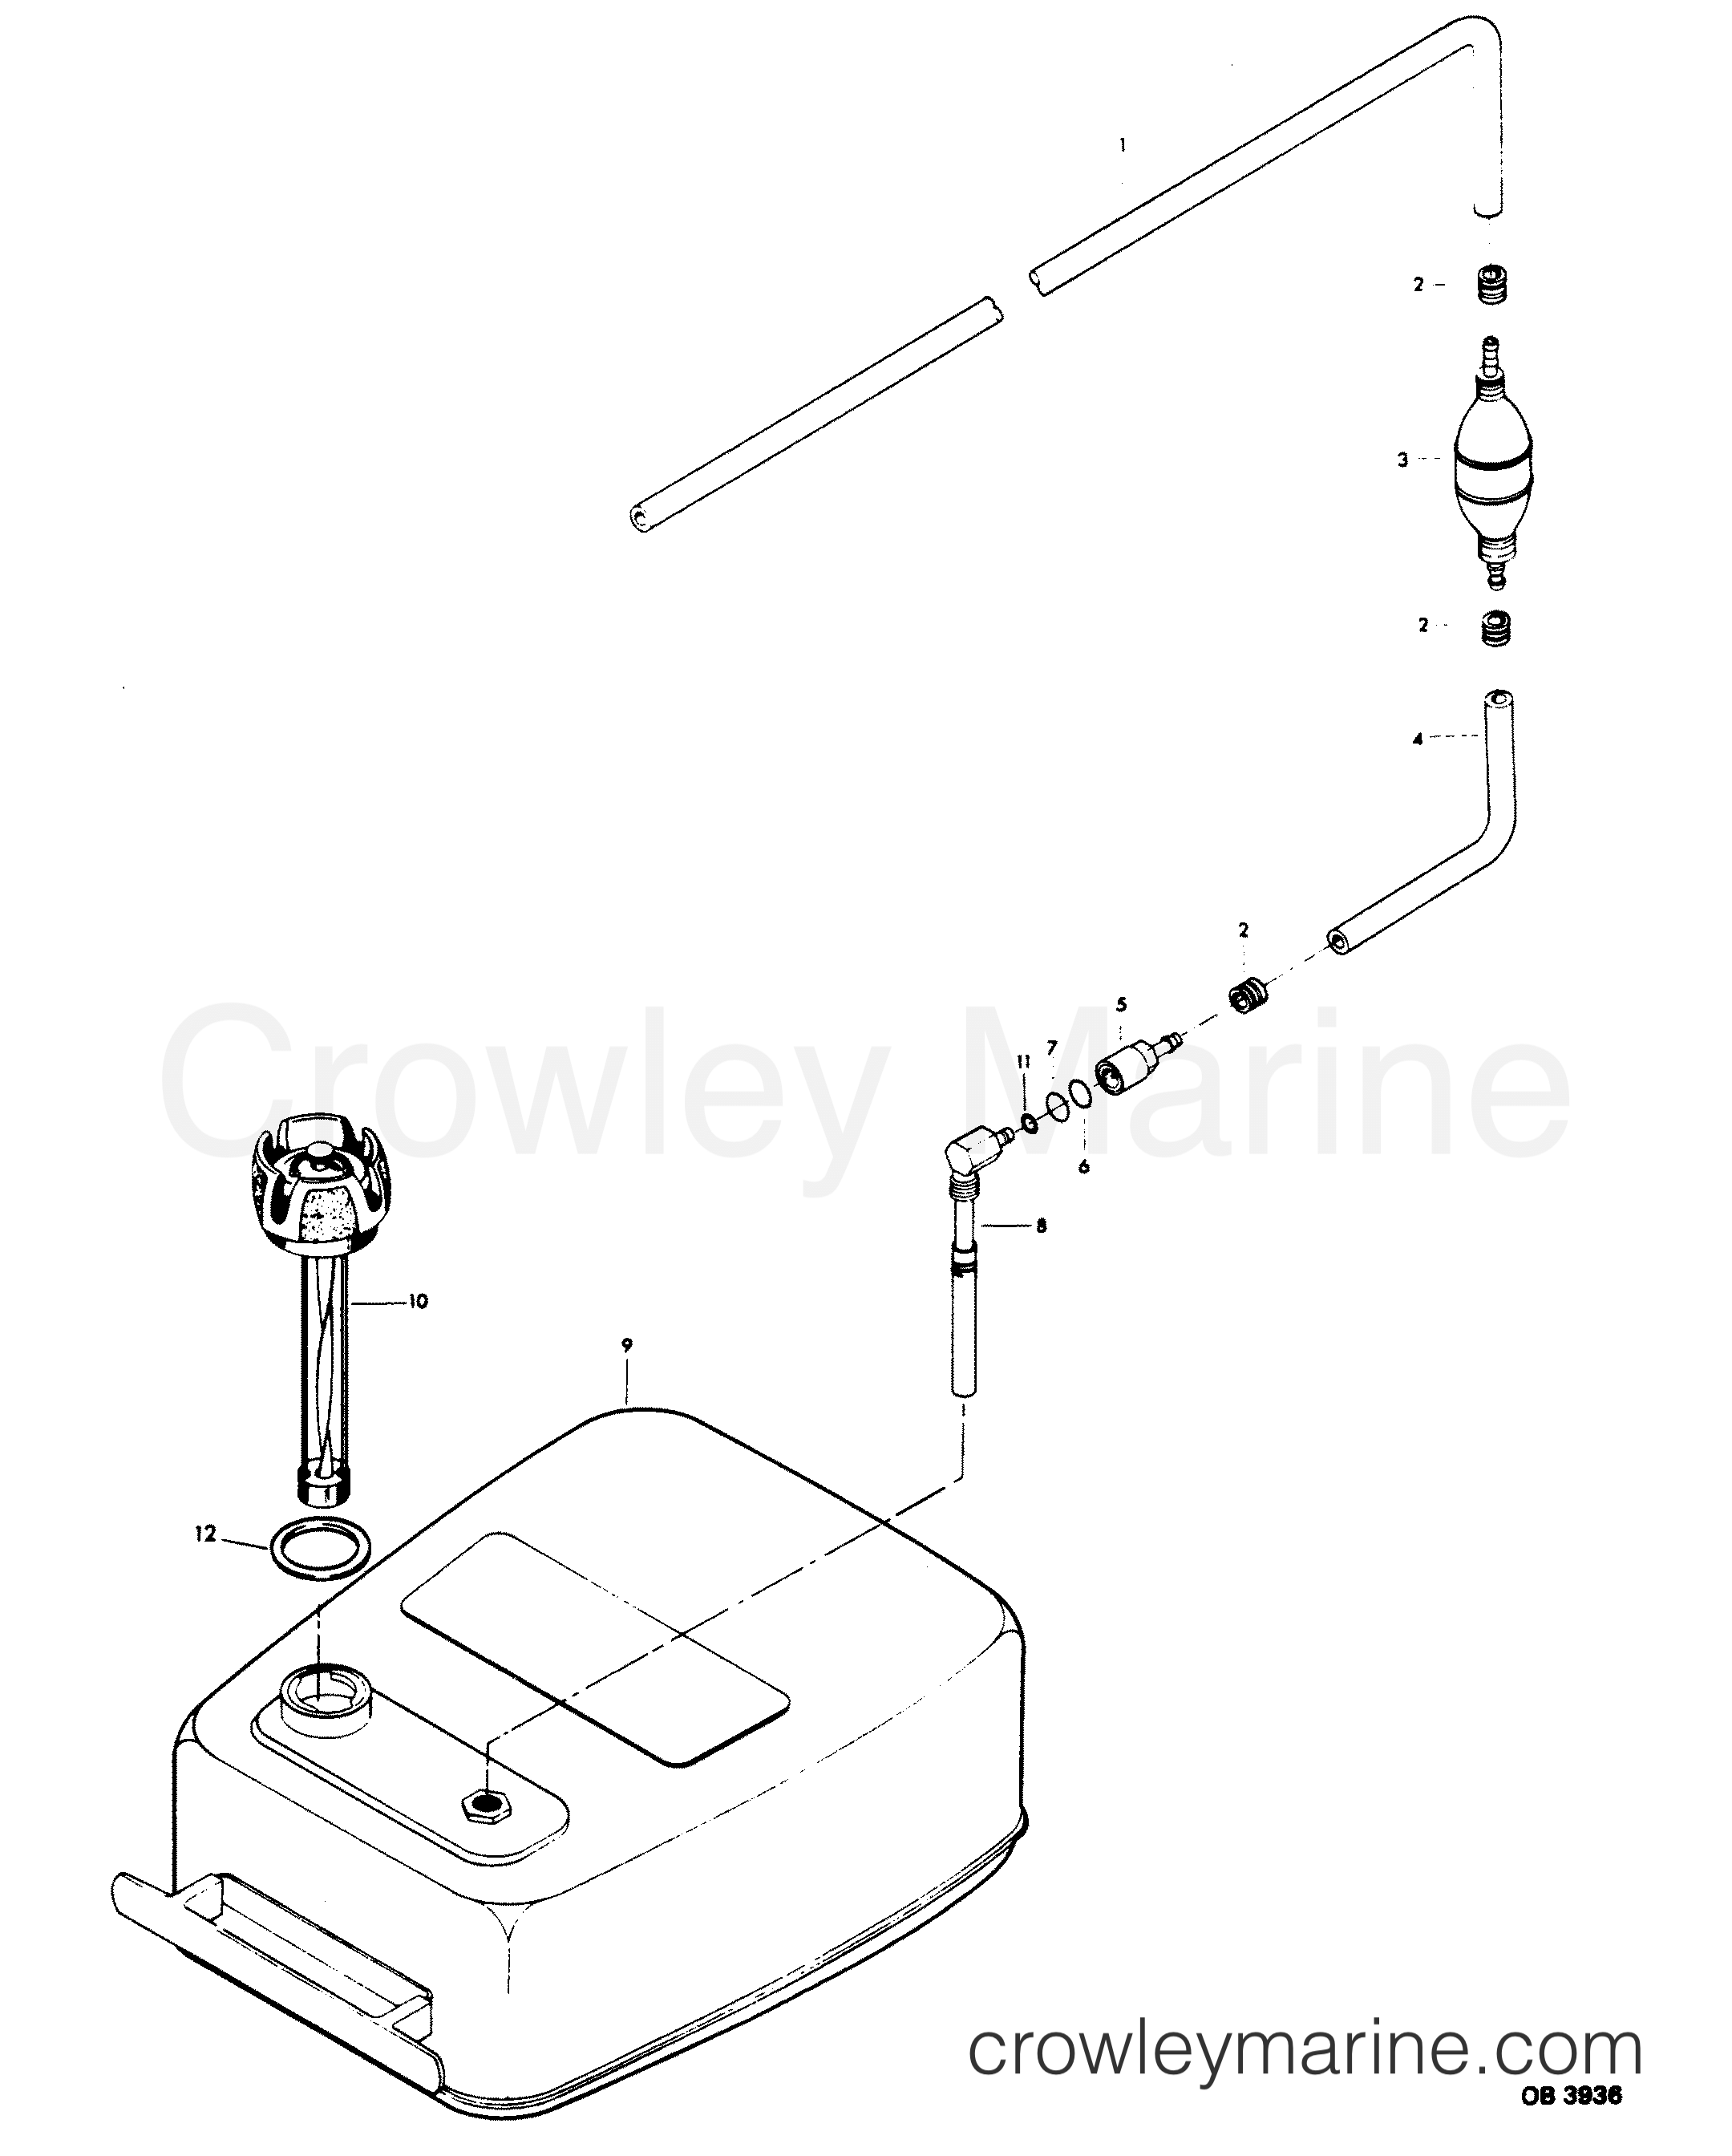 1985 Force Outboard 60 - 608F5A [Force] - FUEL TANK AND LINE section